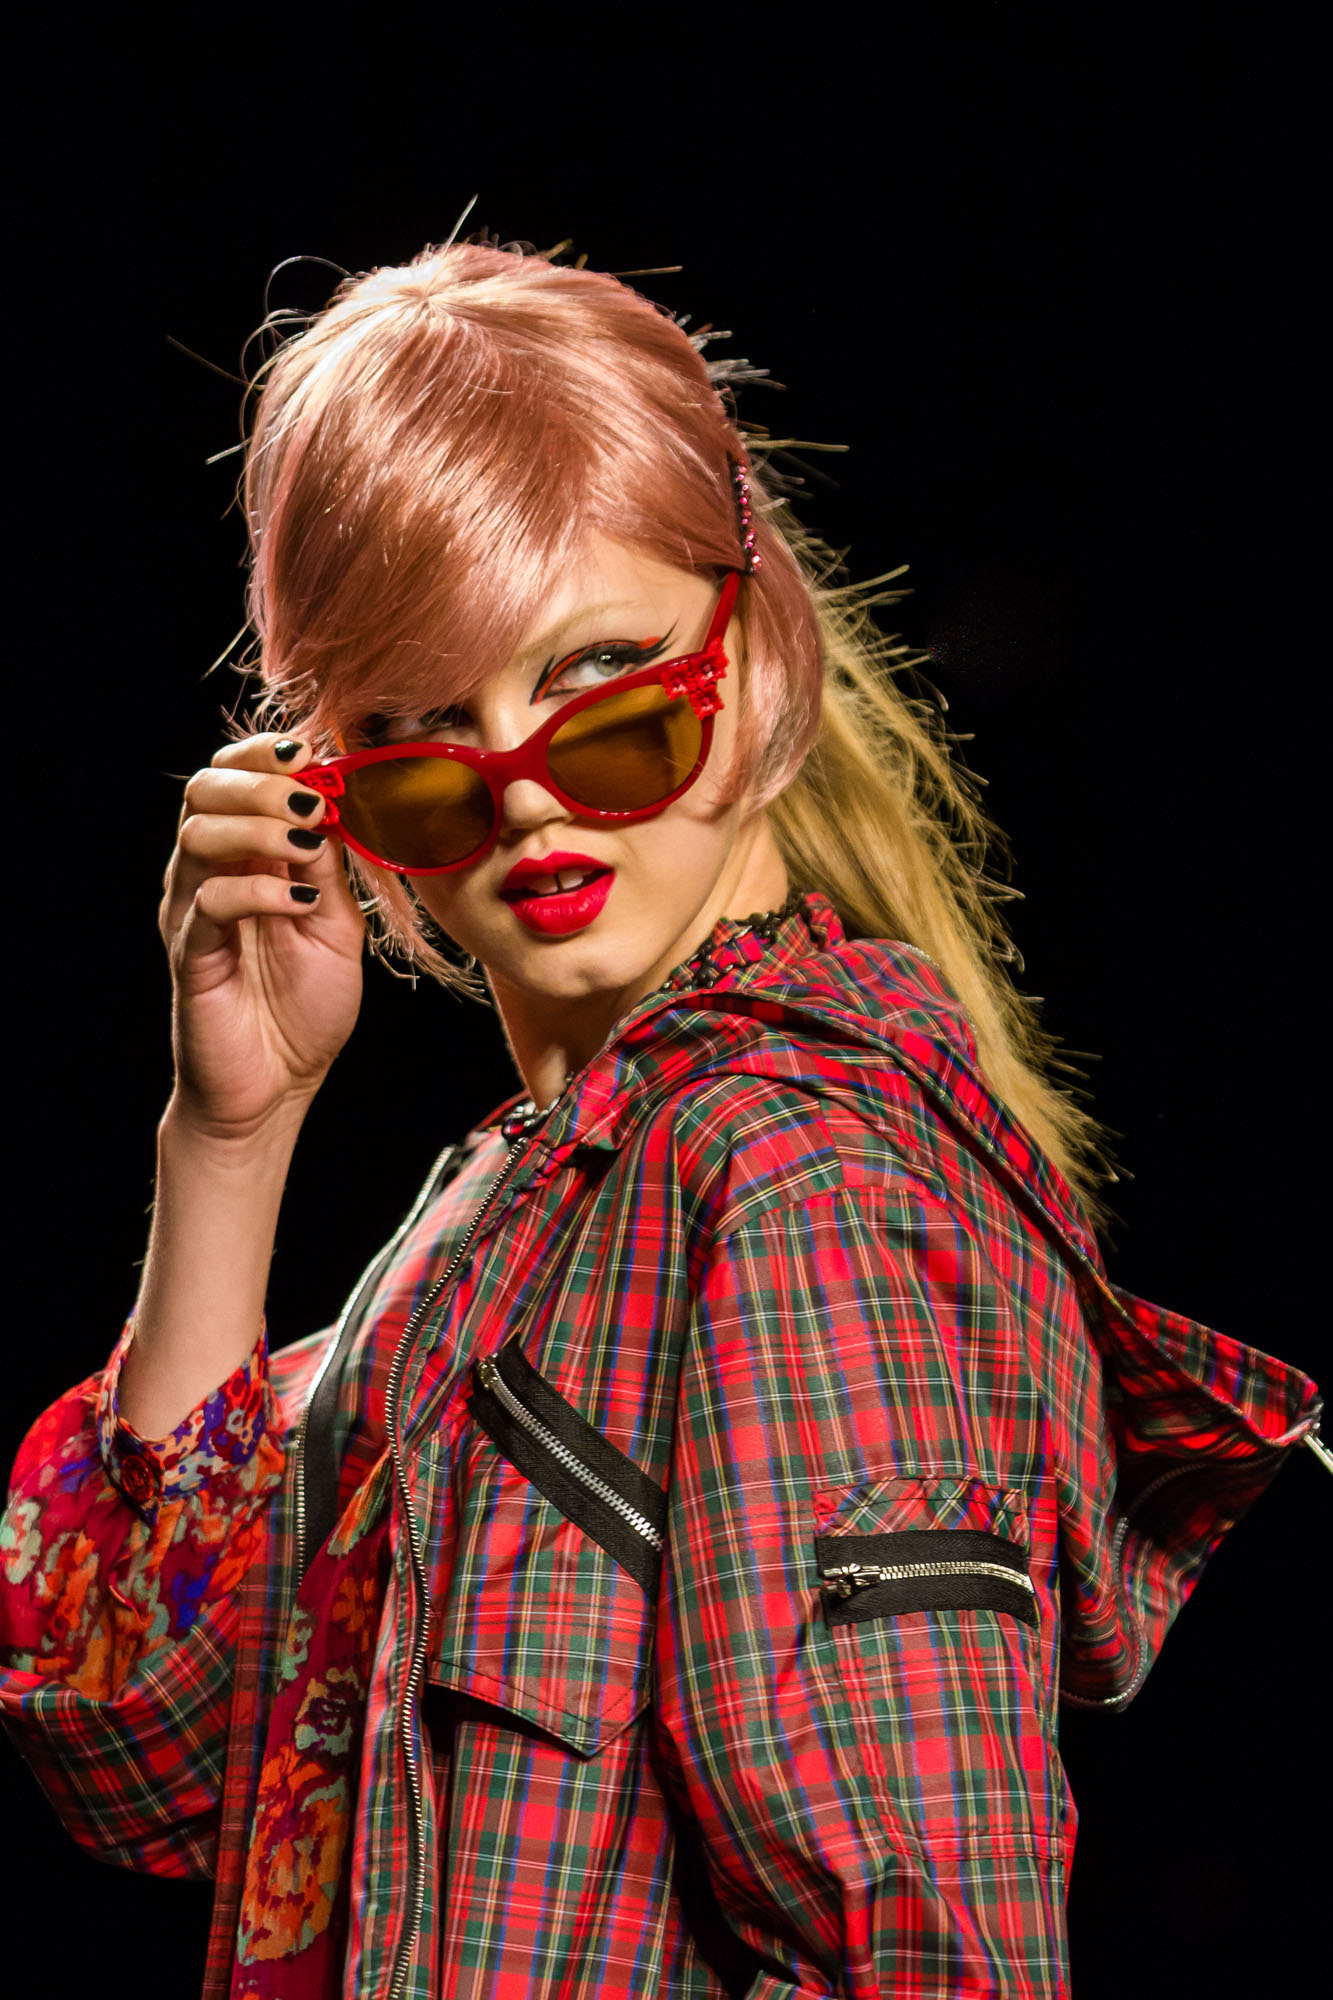 Anna Sui Features Vail Fucci's Image on Instagram for Anna Sui Vision